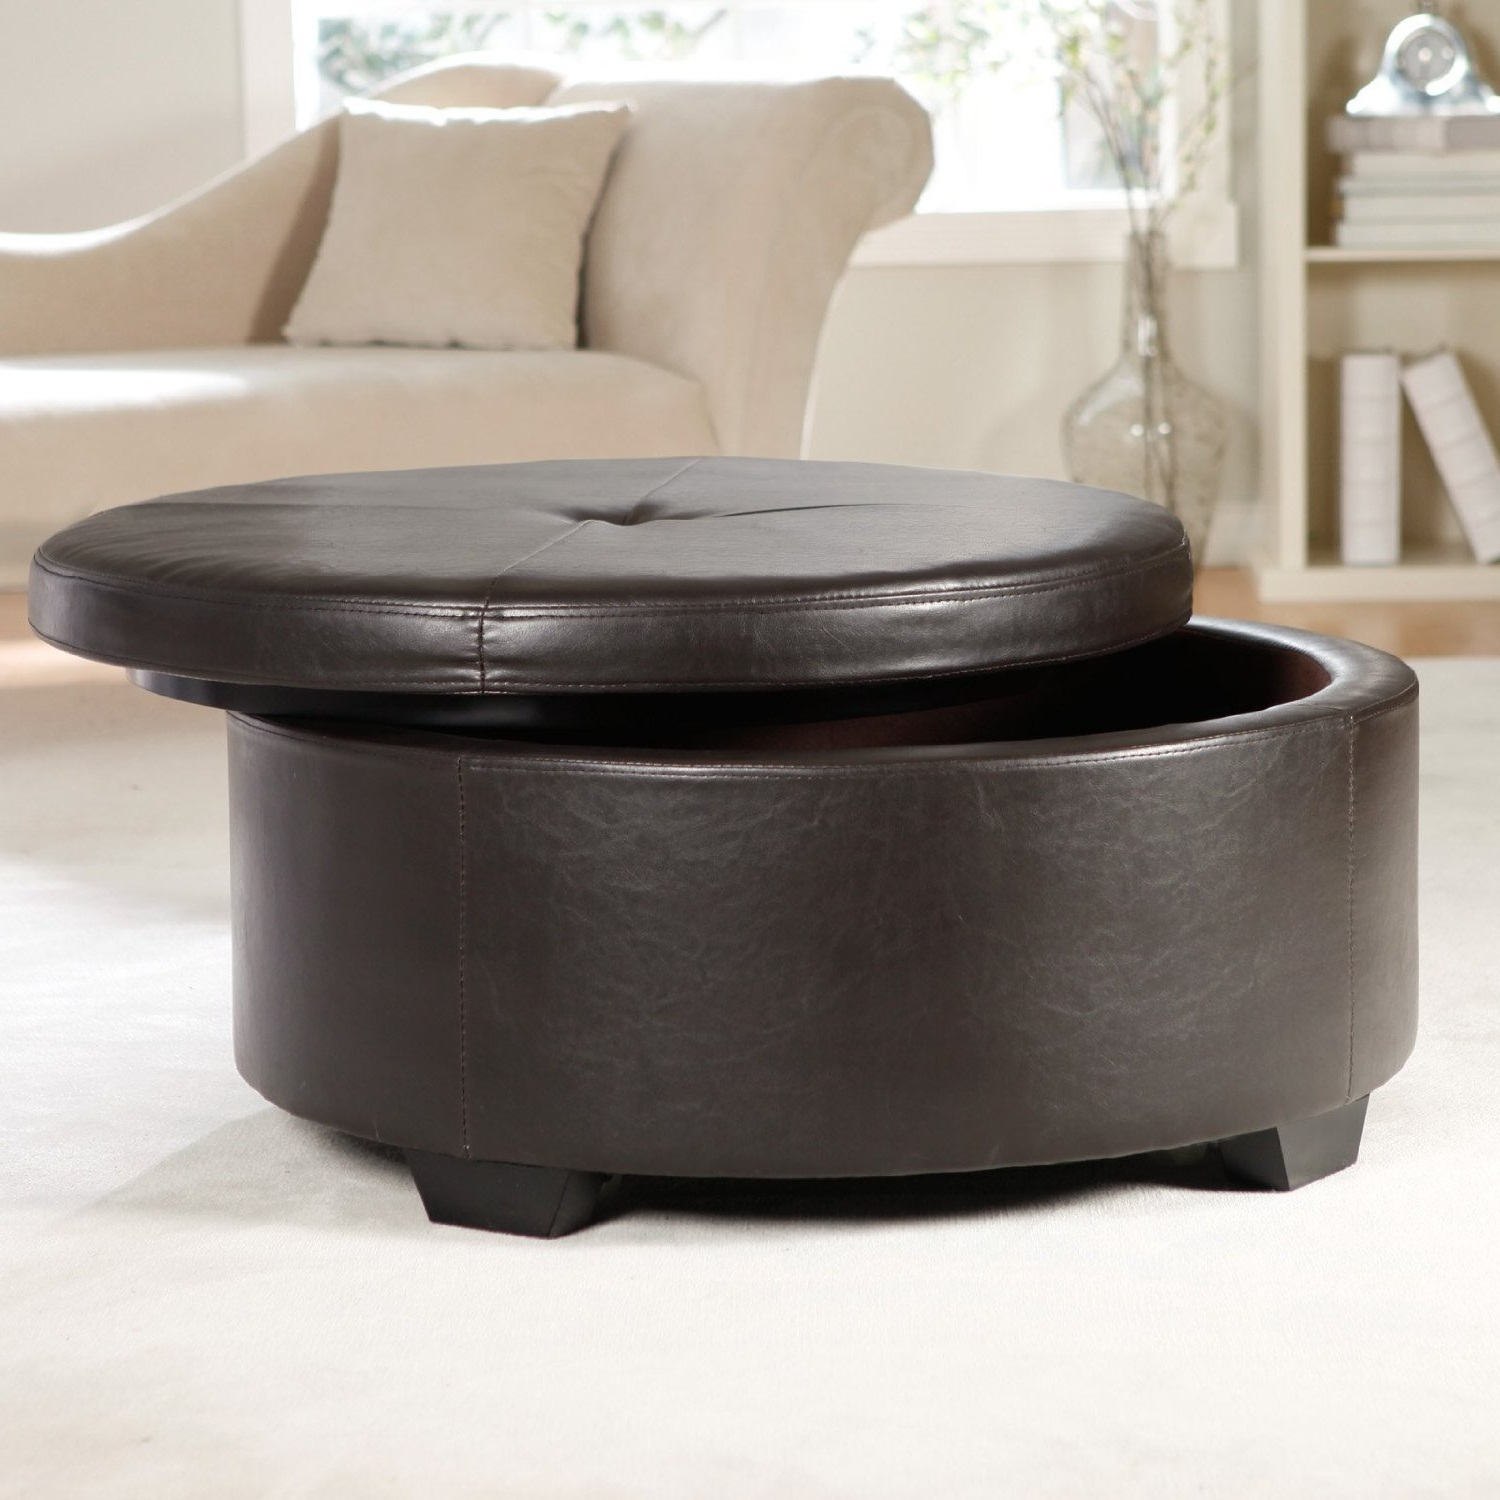 - Black Round Ottoman Royals Courage : Black Leather Ottoman In